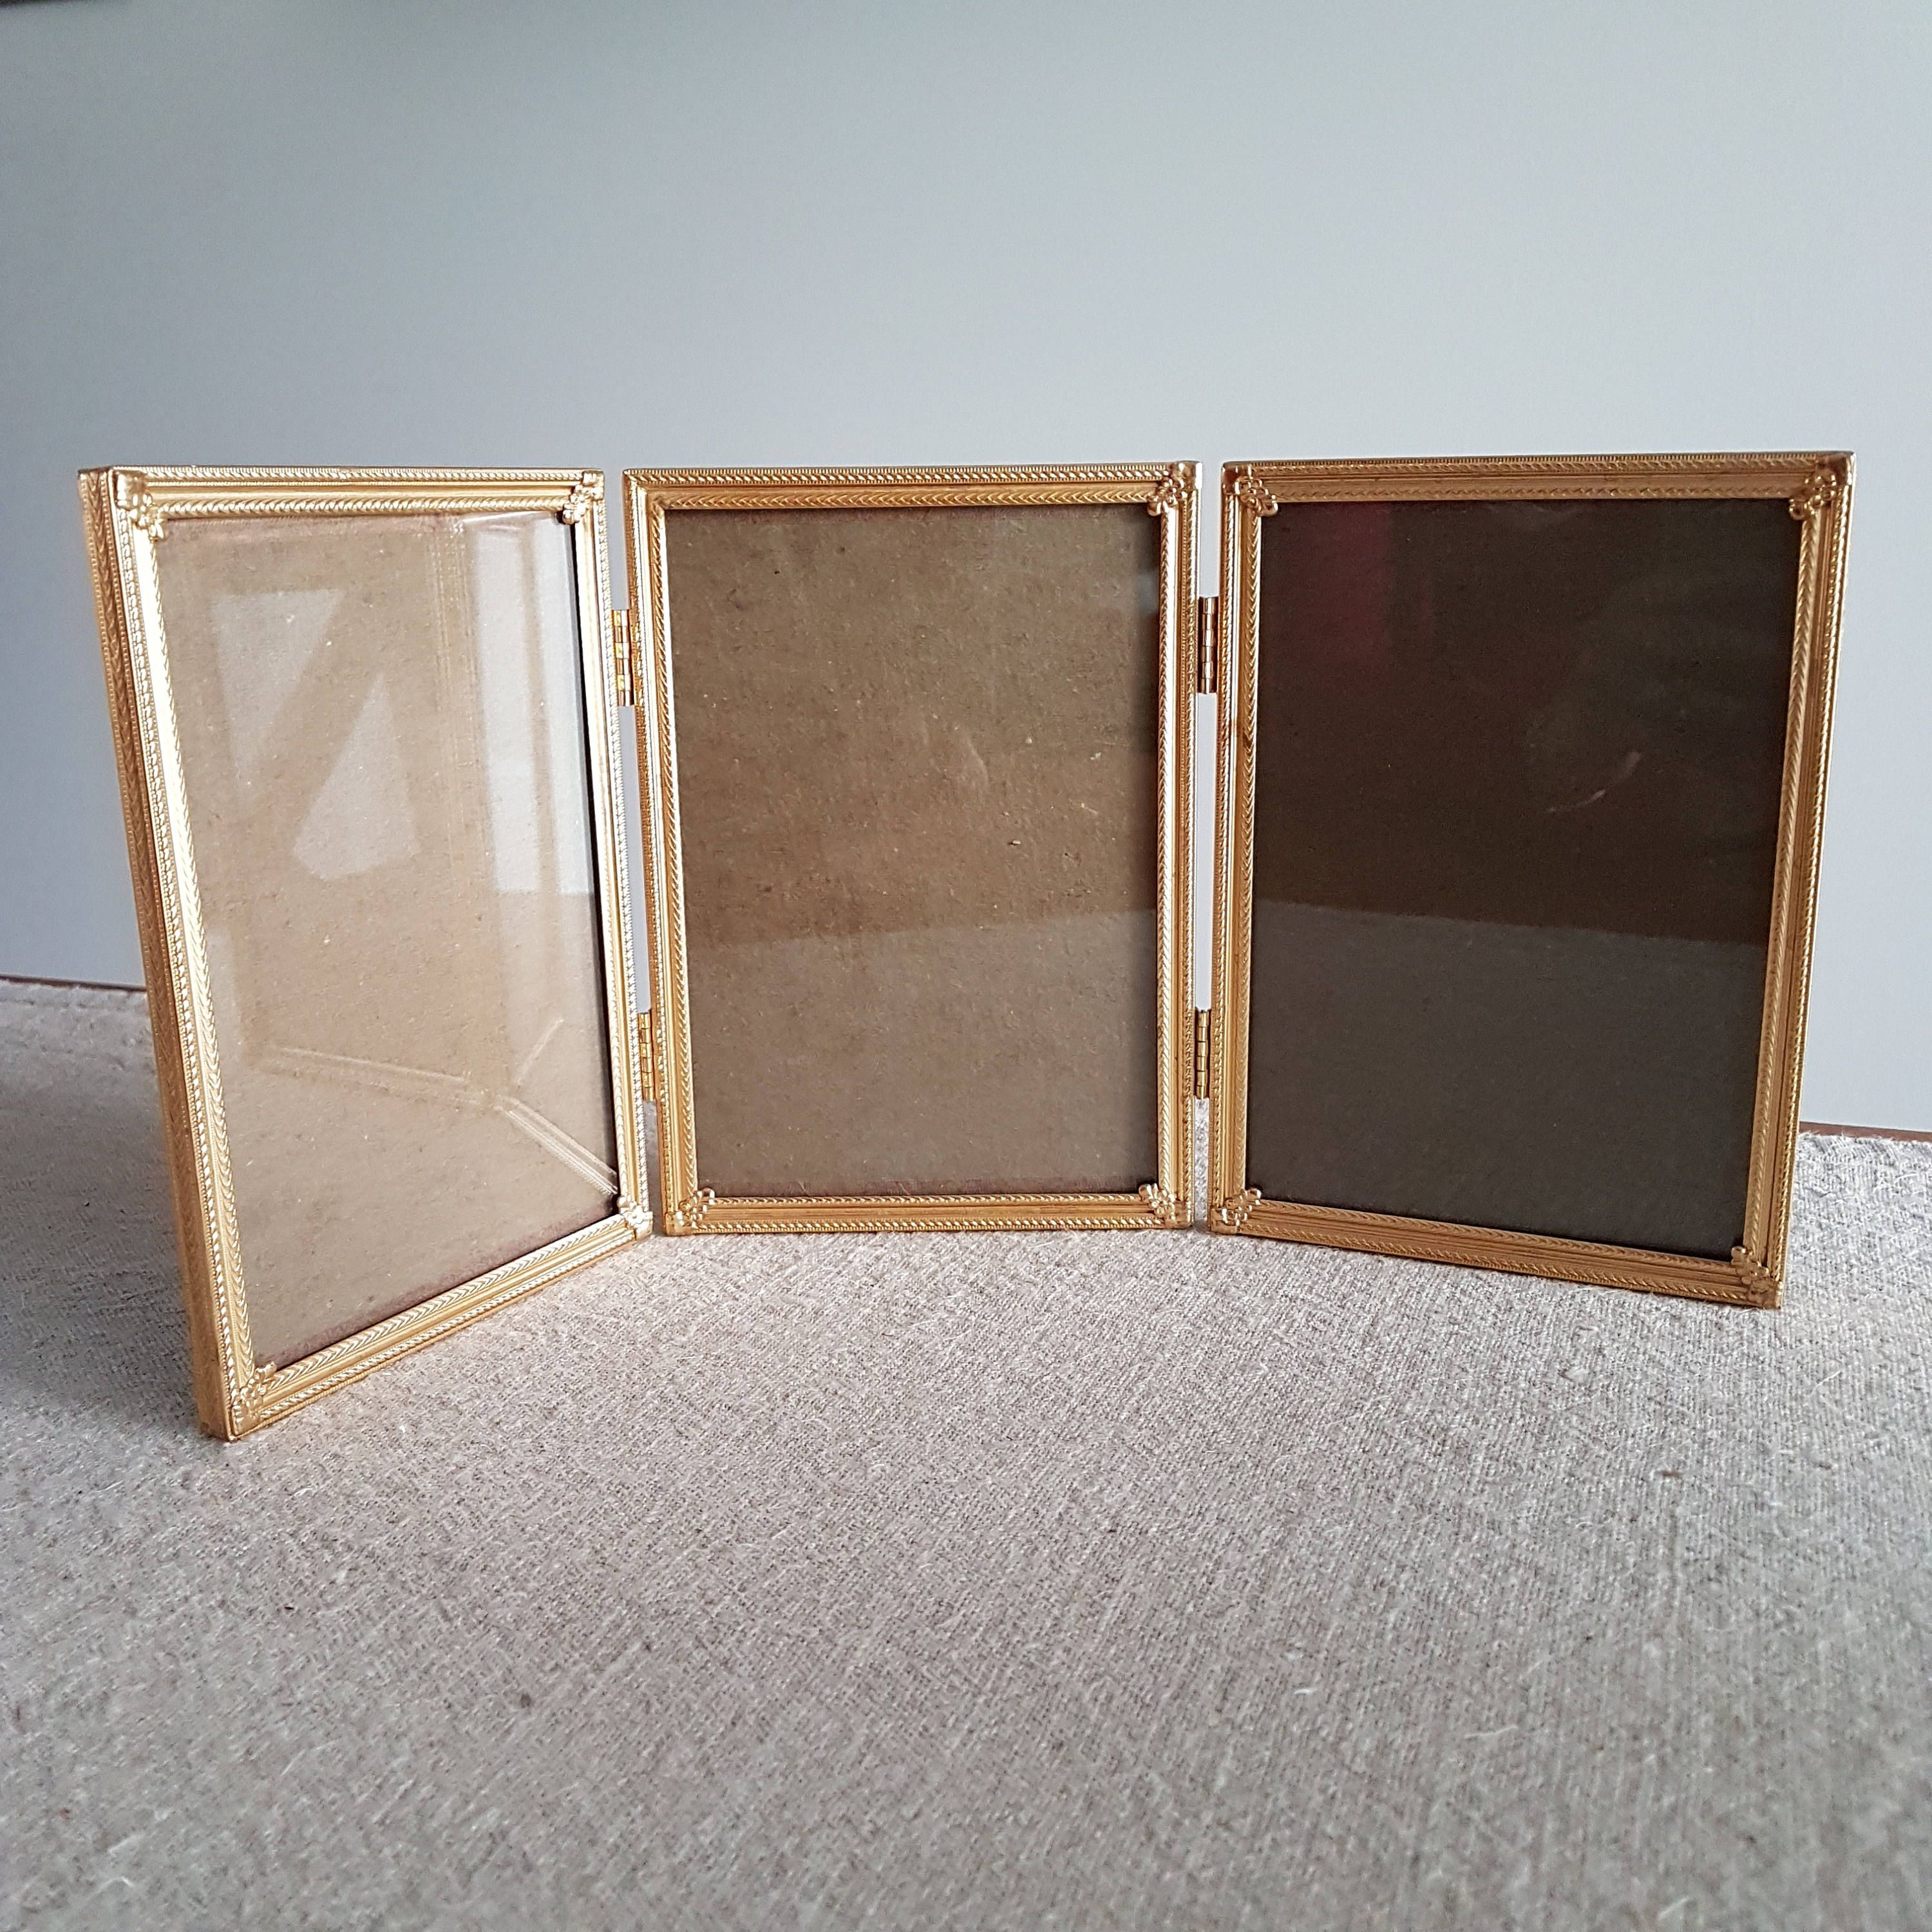 5 X 7 Folding Gold Metal Hinged Picture Frame Trifold Three